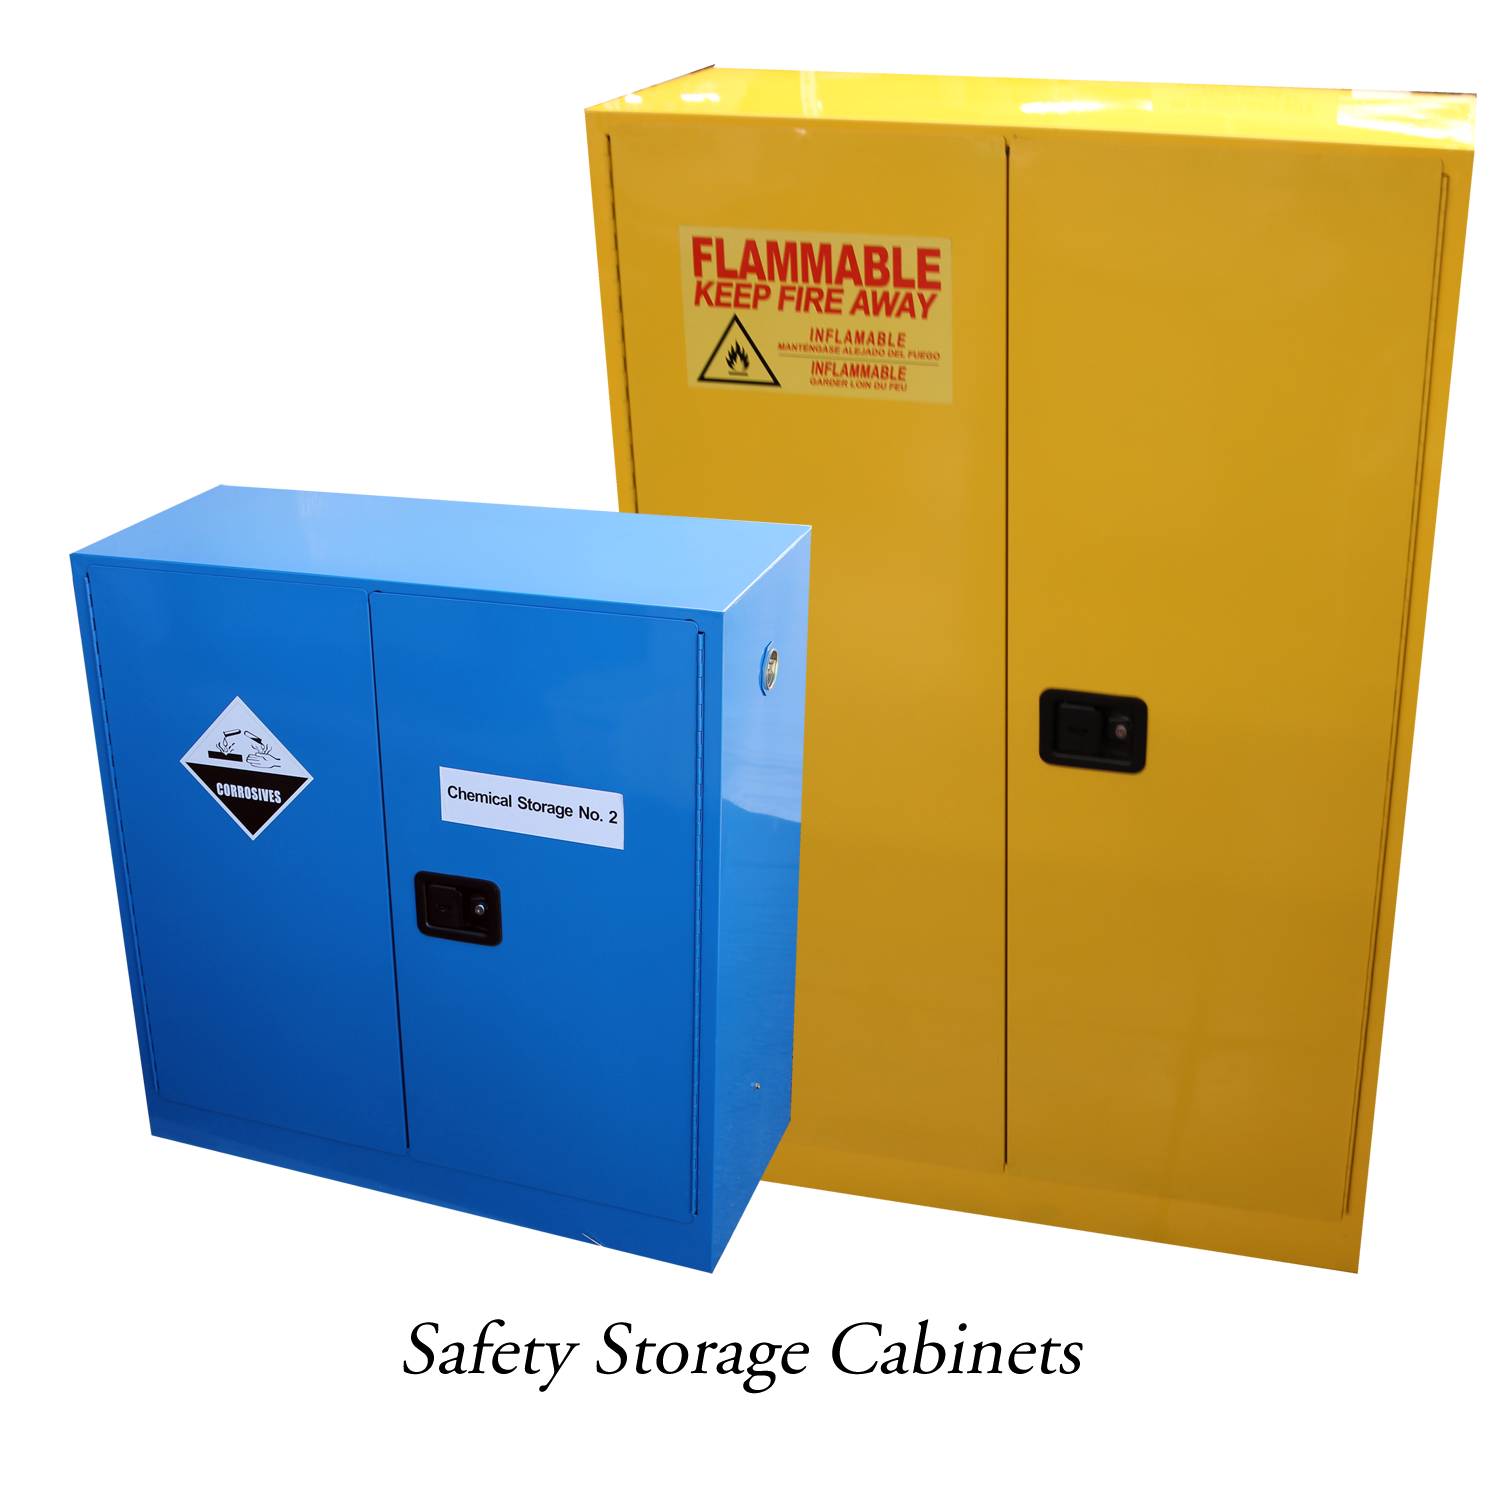 Metallographic safety cabinets